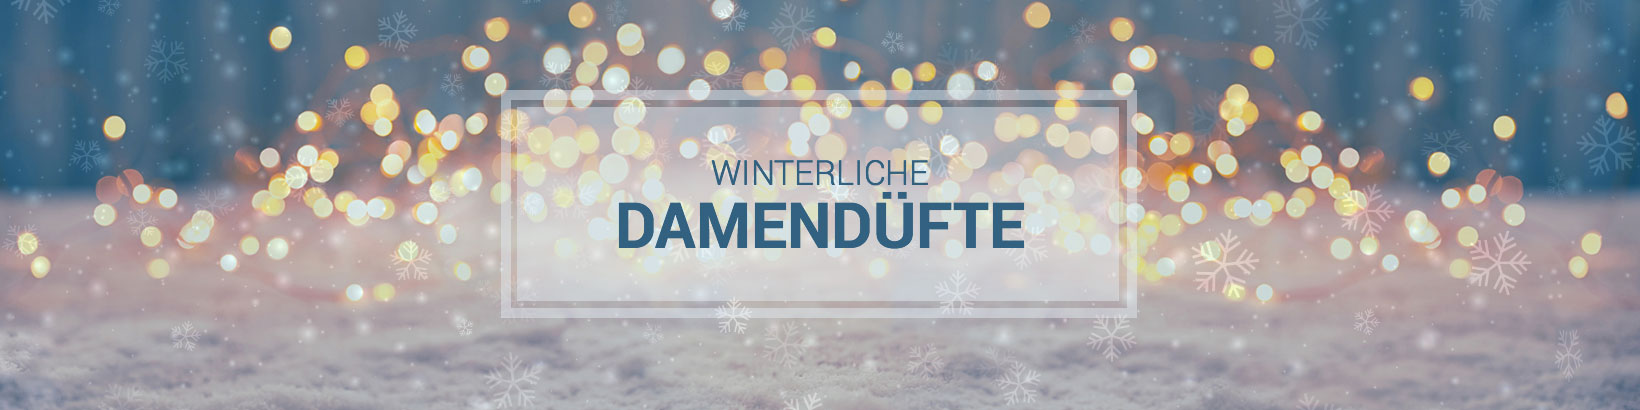 Visual-Winter-Damenduefte-1640x410